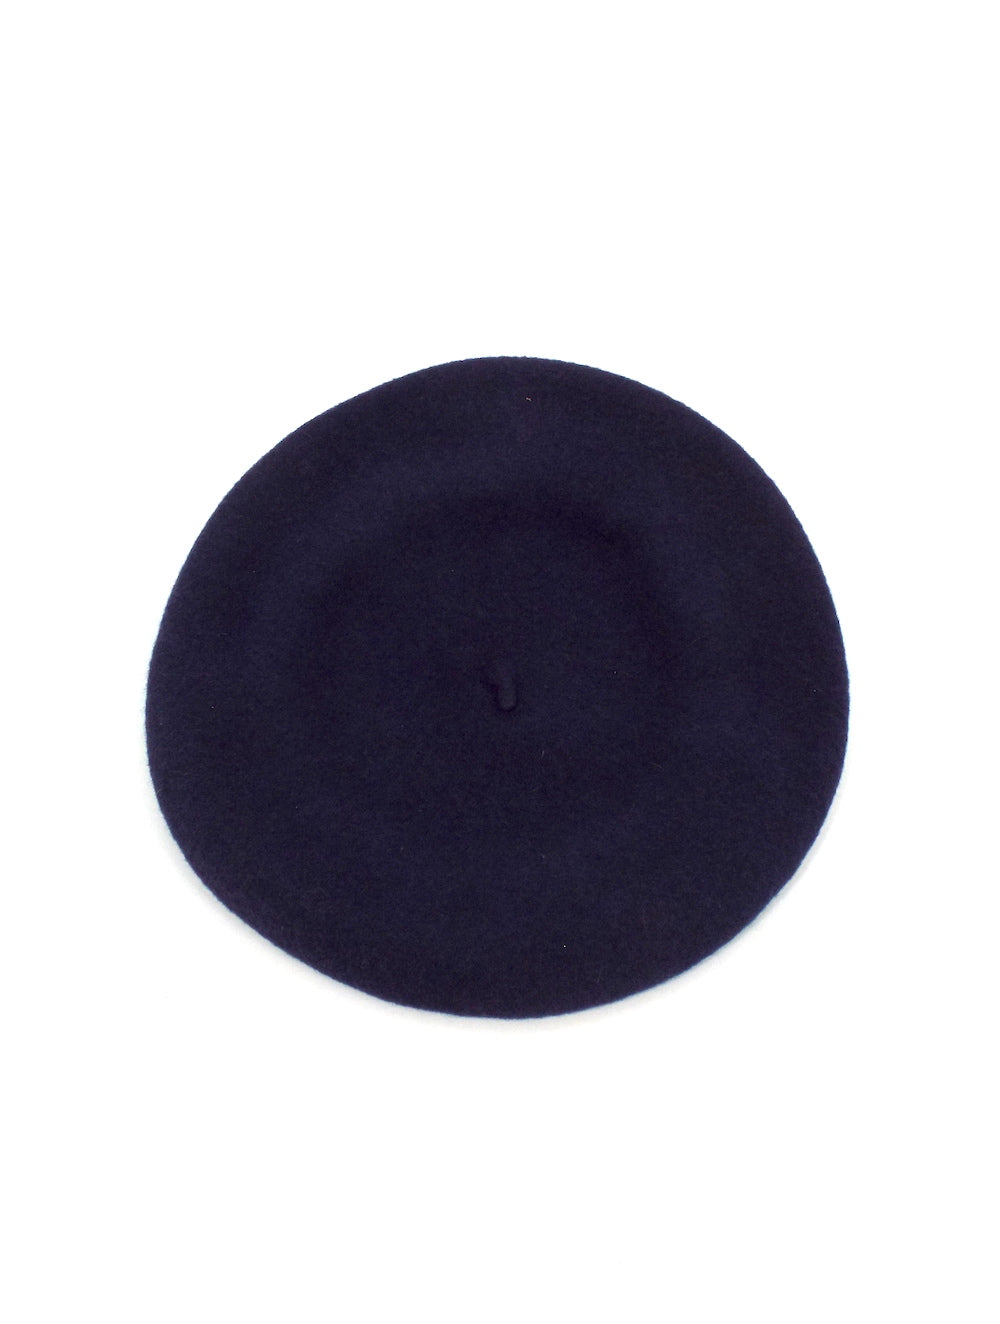 Vintage Navy Blue Wool Beret